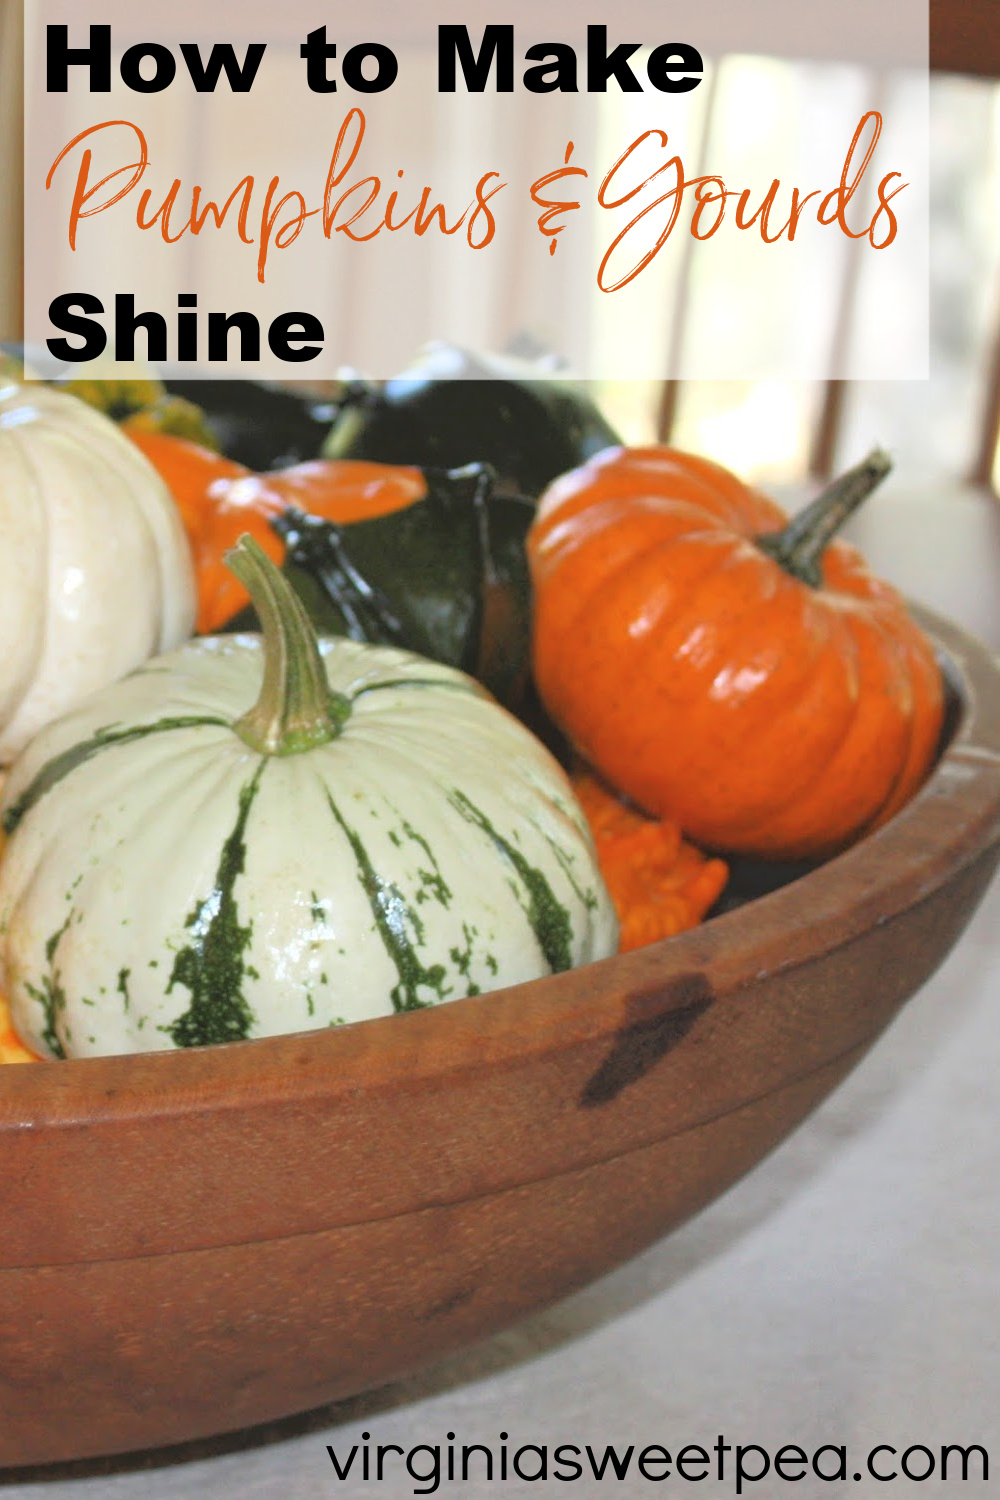 How to Make Pumpkins and Gourds Shine - Learn the simple trick to making pumpkins and gourds shine.  Not only will they shine, they'll last longer as well. via @spaula